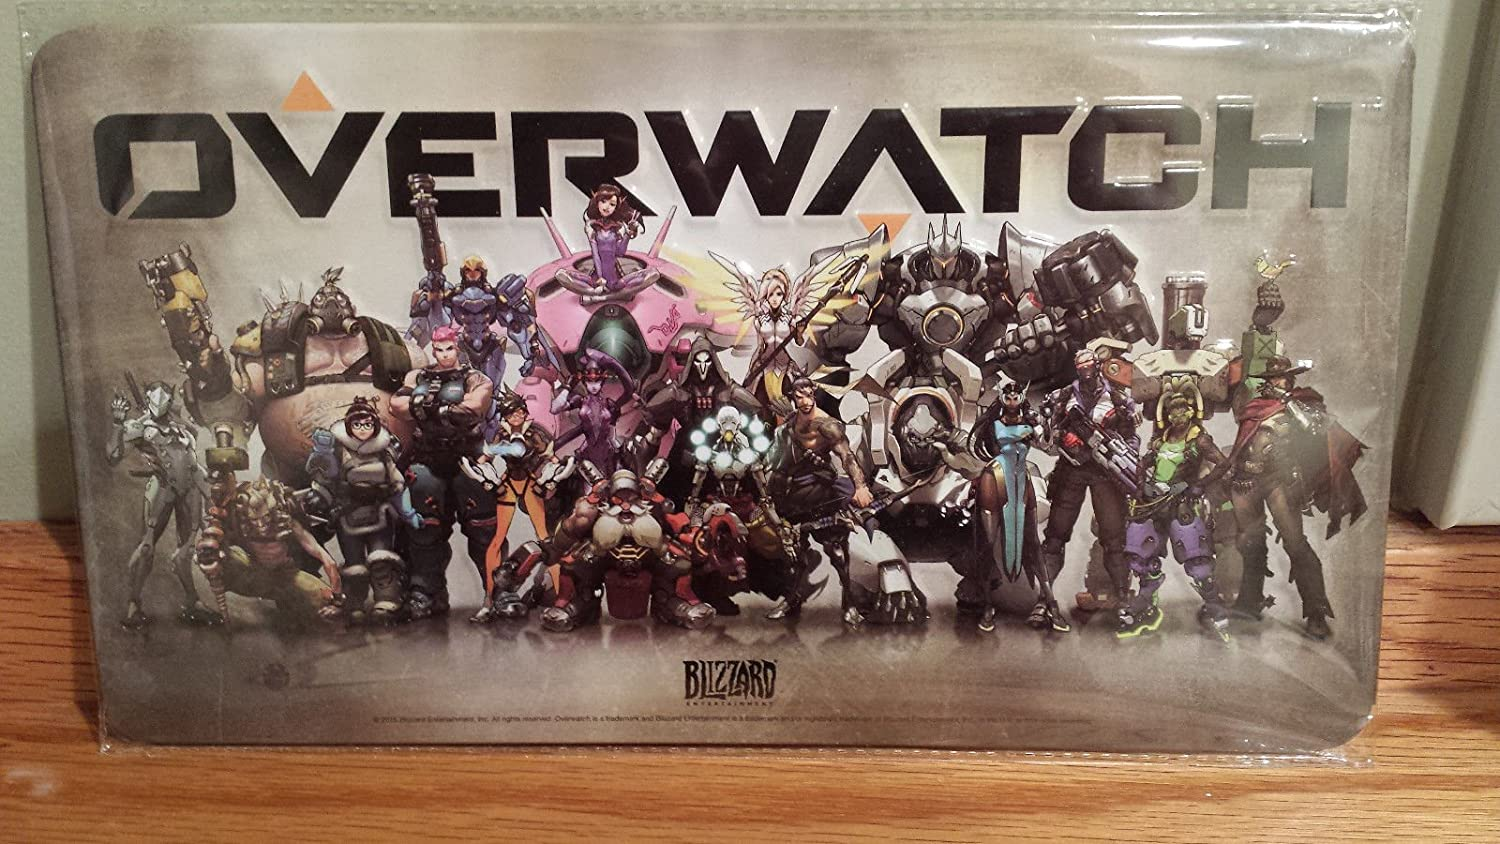 Blizzard Entertainment Overwatch Collectible Metal Art Plate